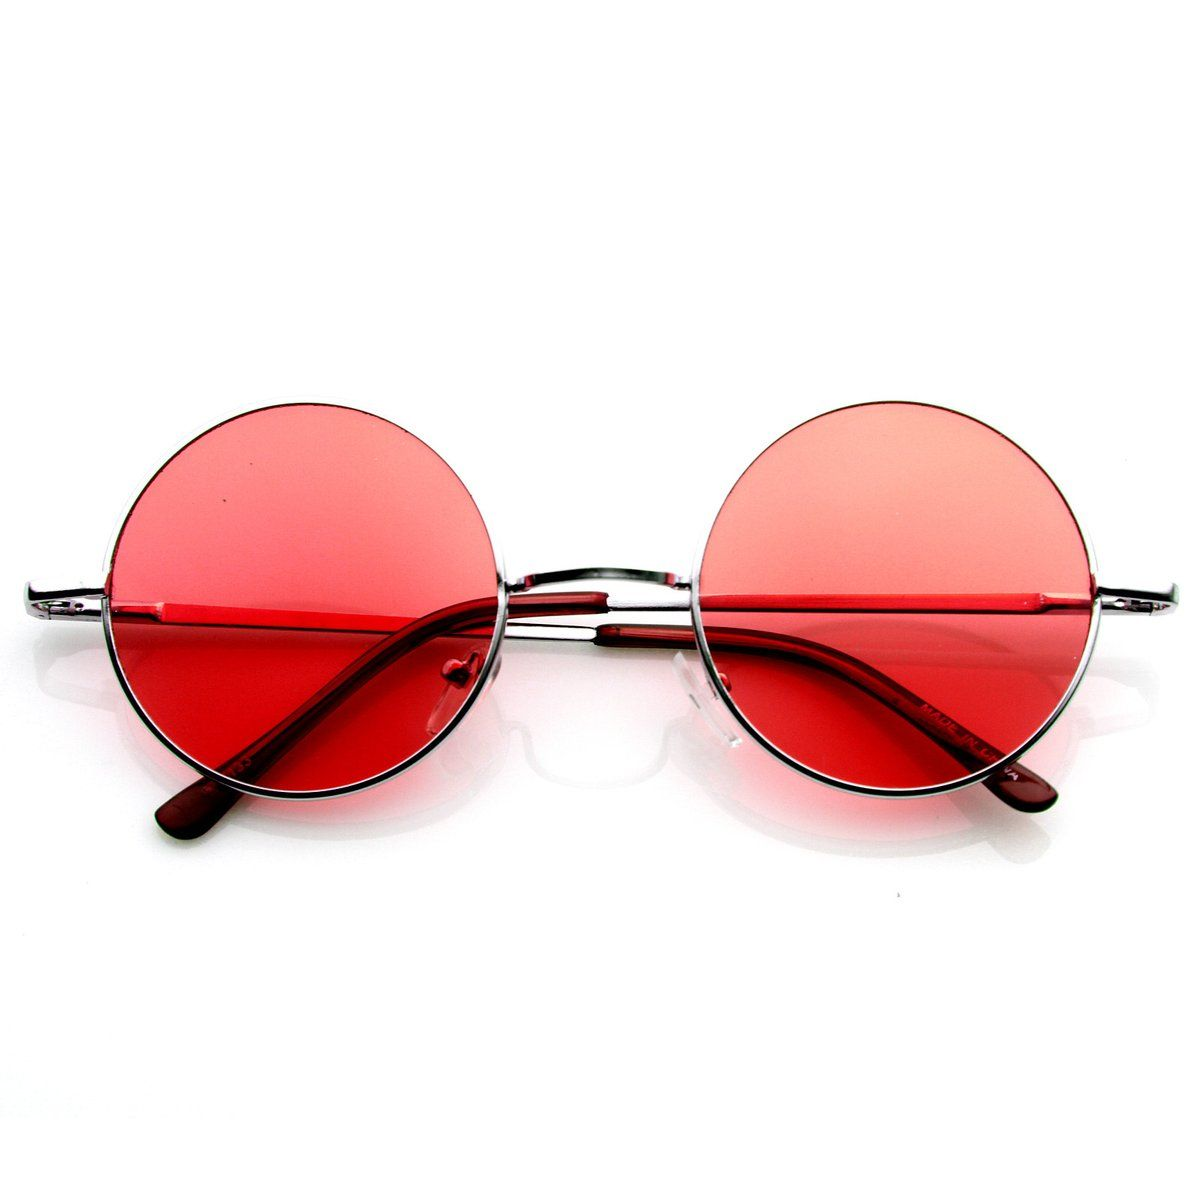 8b4140600990 Retro Hippie Metal Lennon Round Color Lens Sunglasses 8594